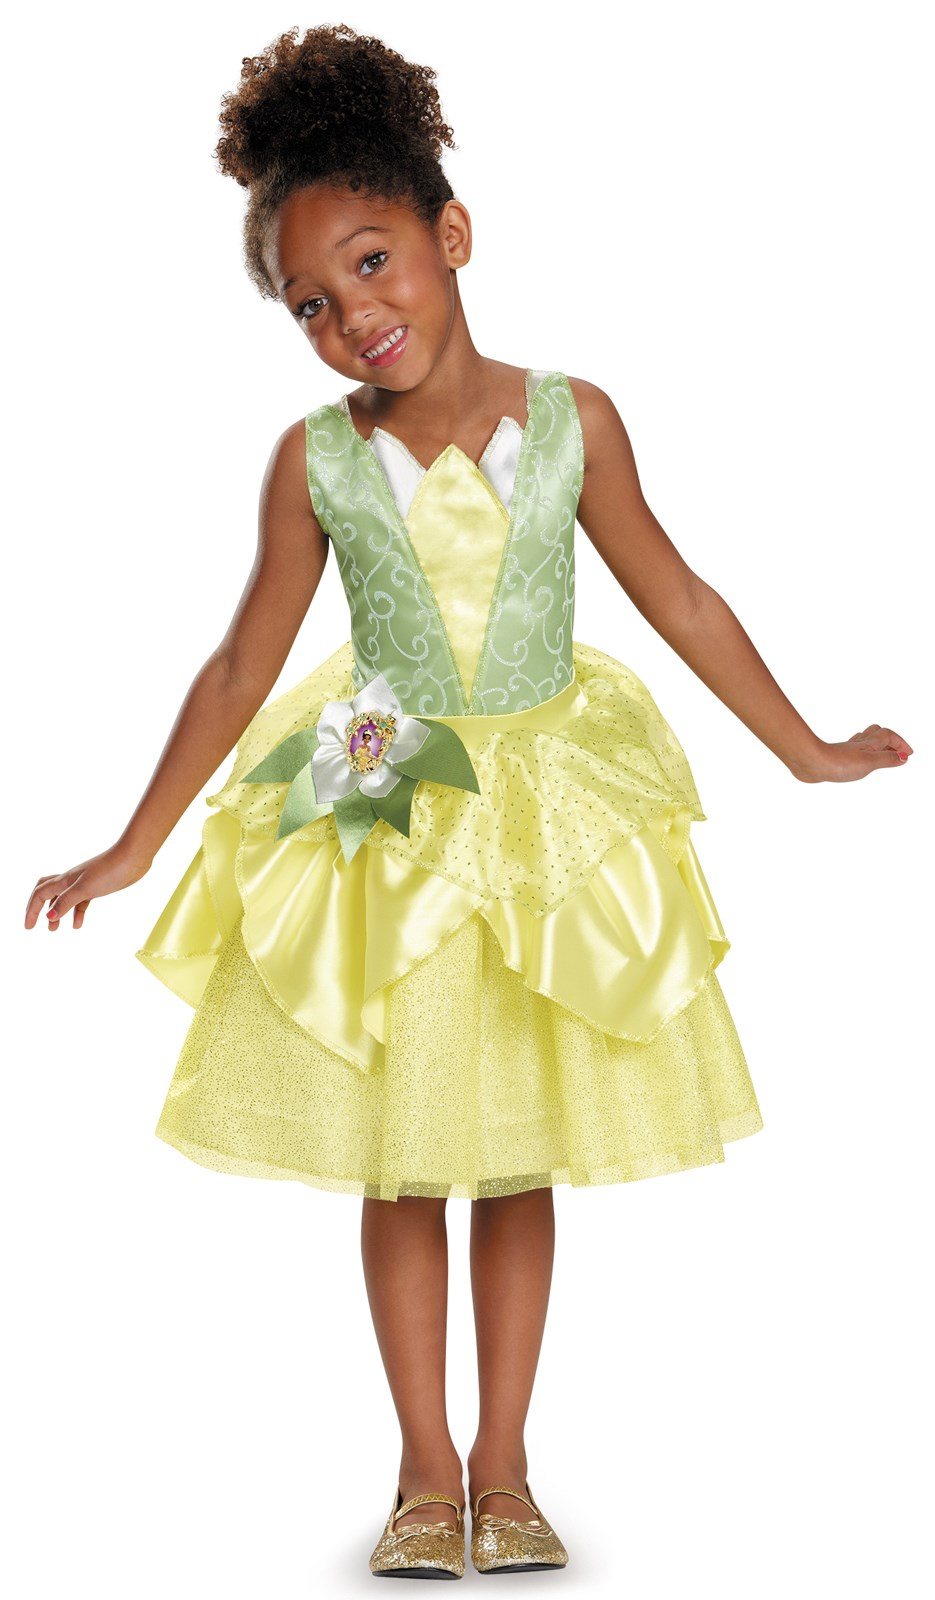 Disney Tiana Deluxe Sparkle Toddler / Child Costume 7-8